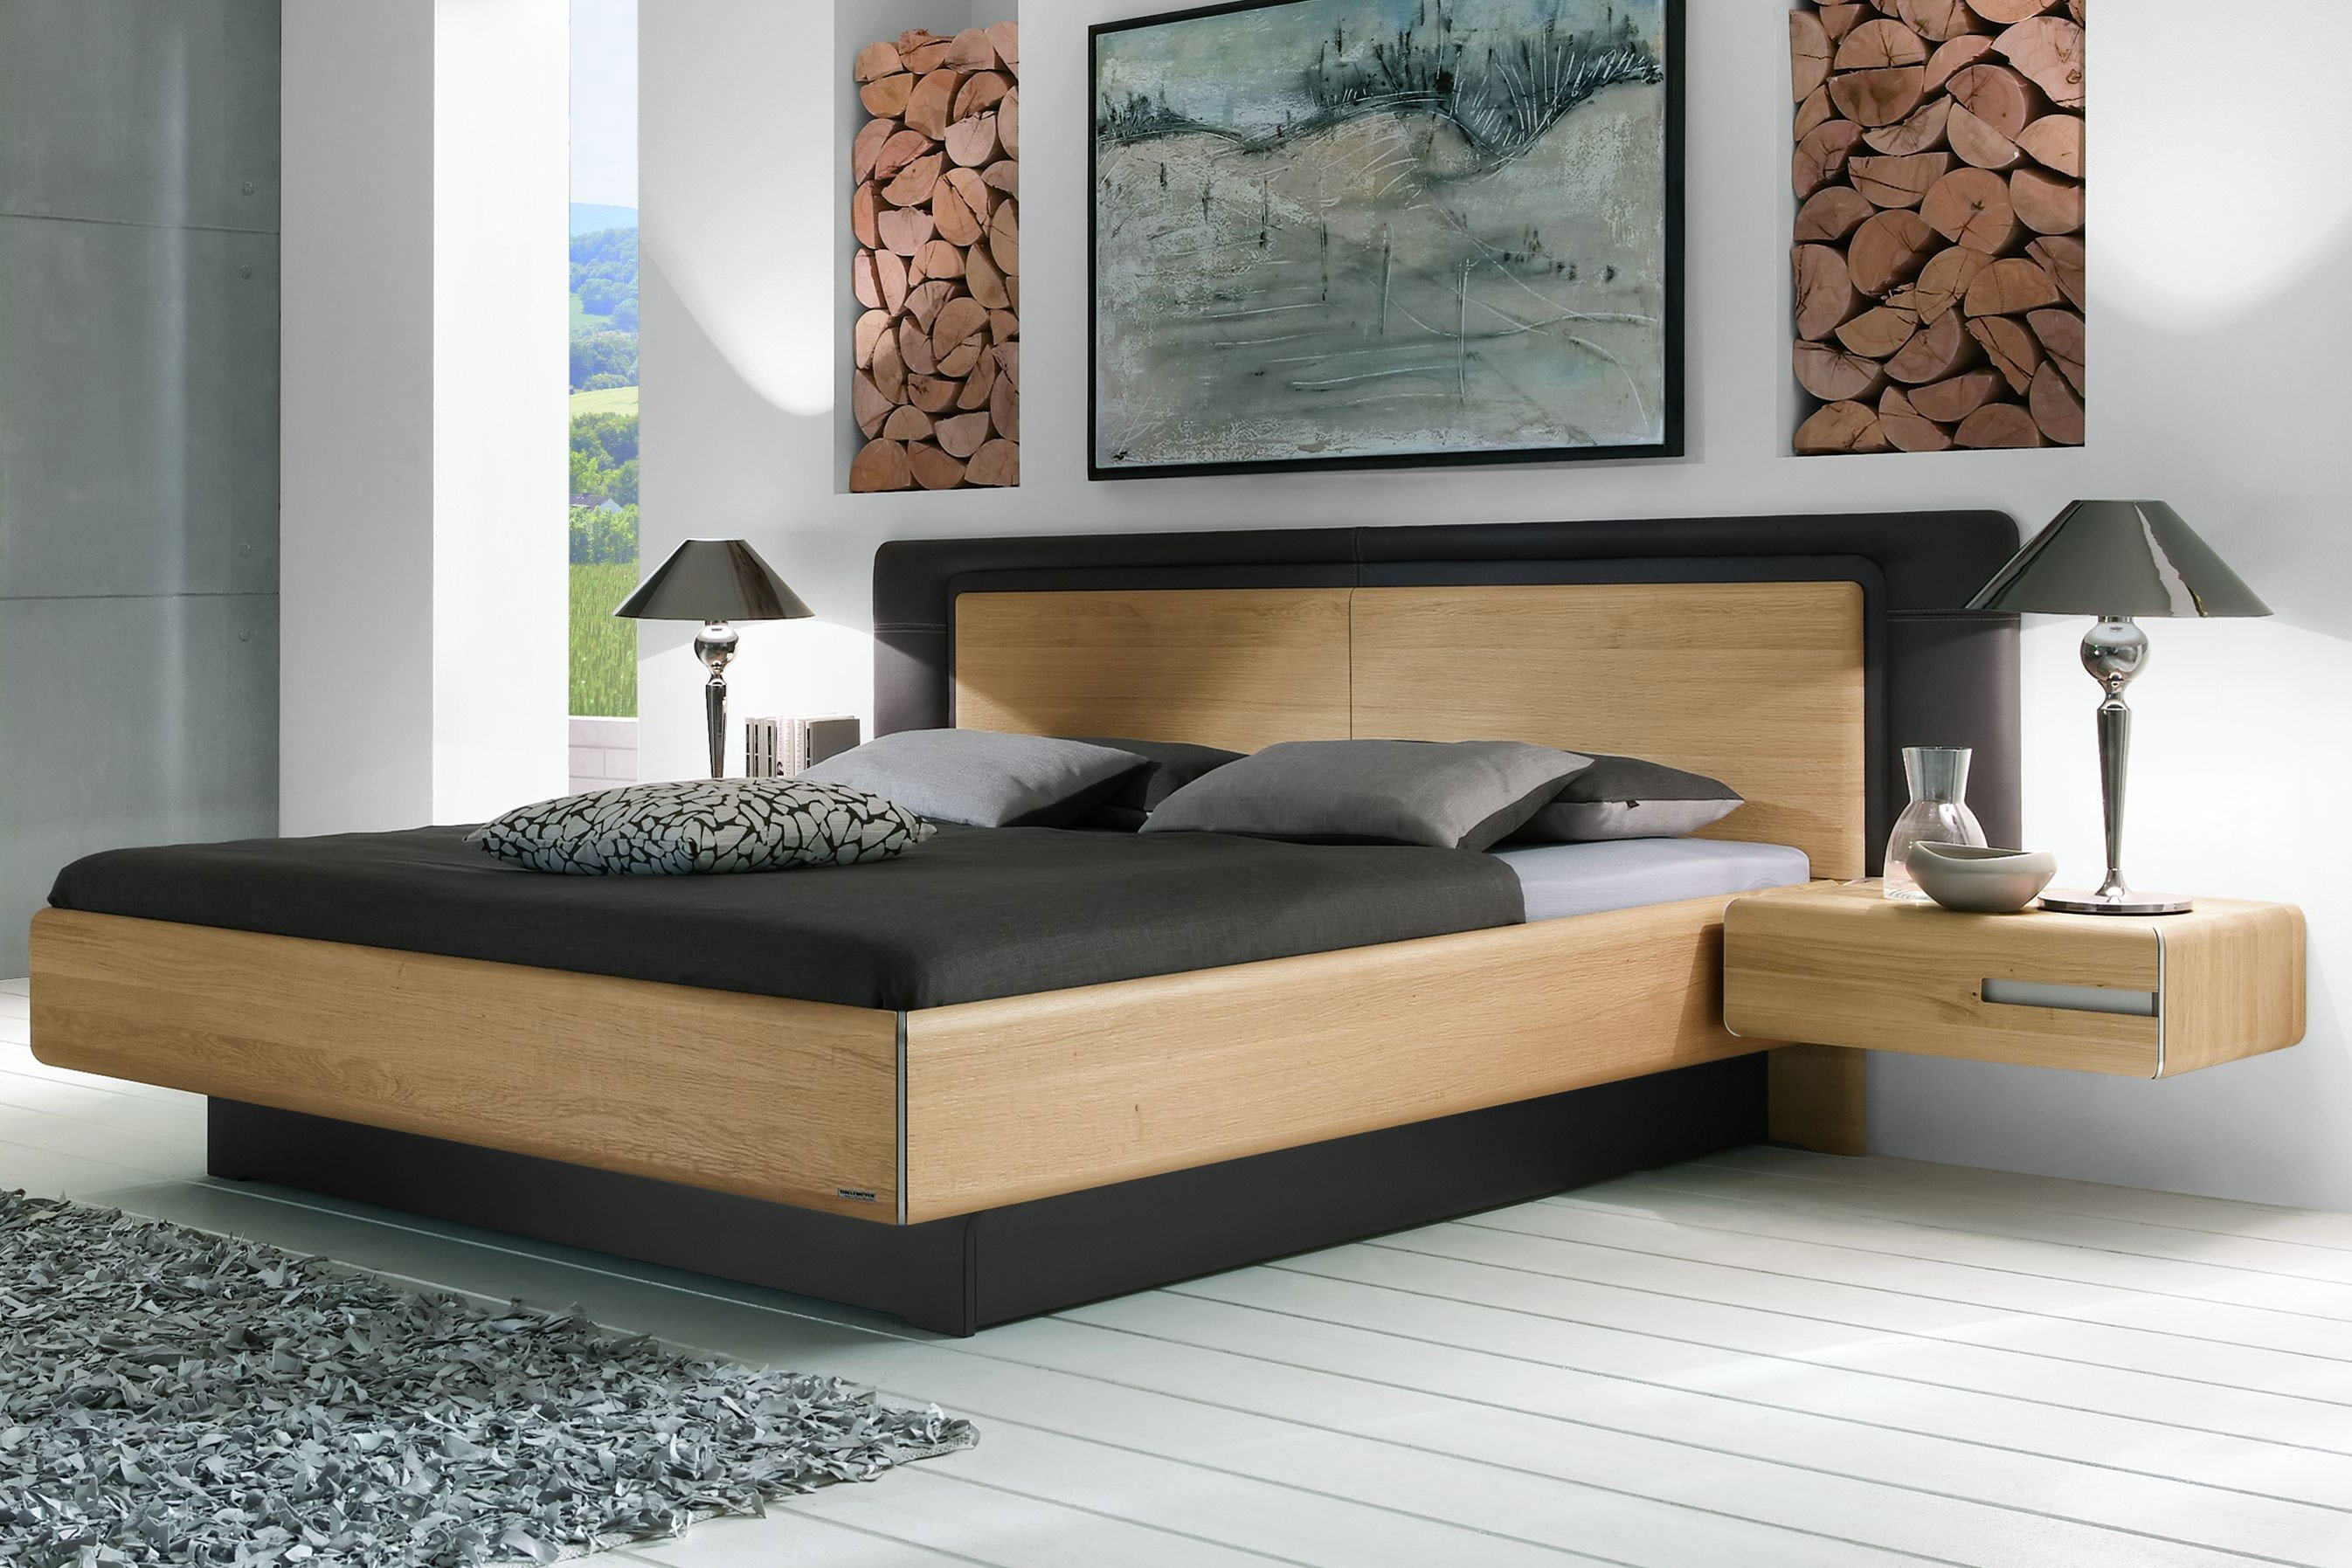 thielemeyer casa schlafzimmer treibholzdesign m bel letz ihr online shop. Black Bedroom Furniture Sets. Home Design Ideas